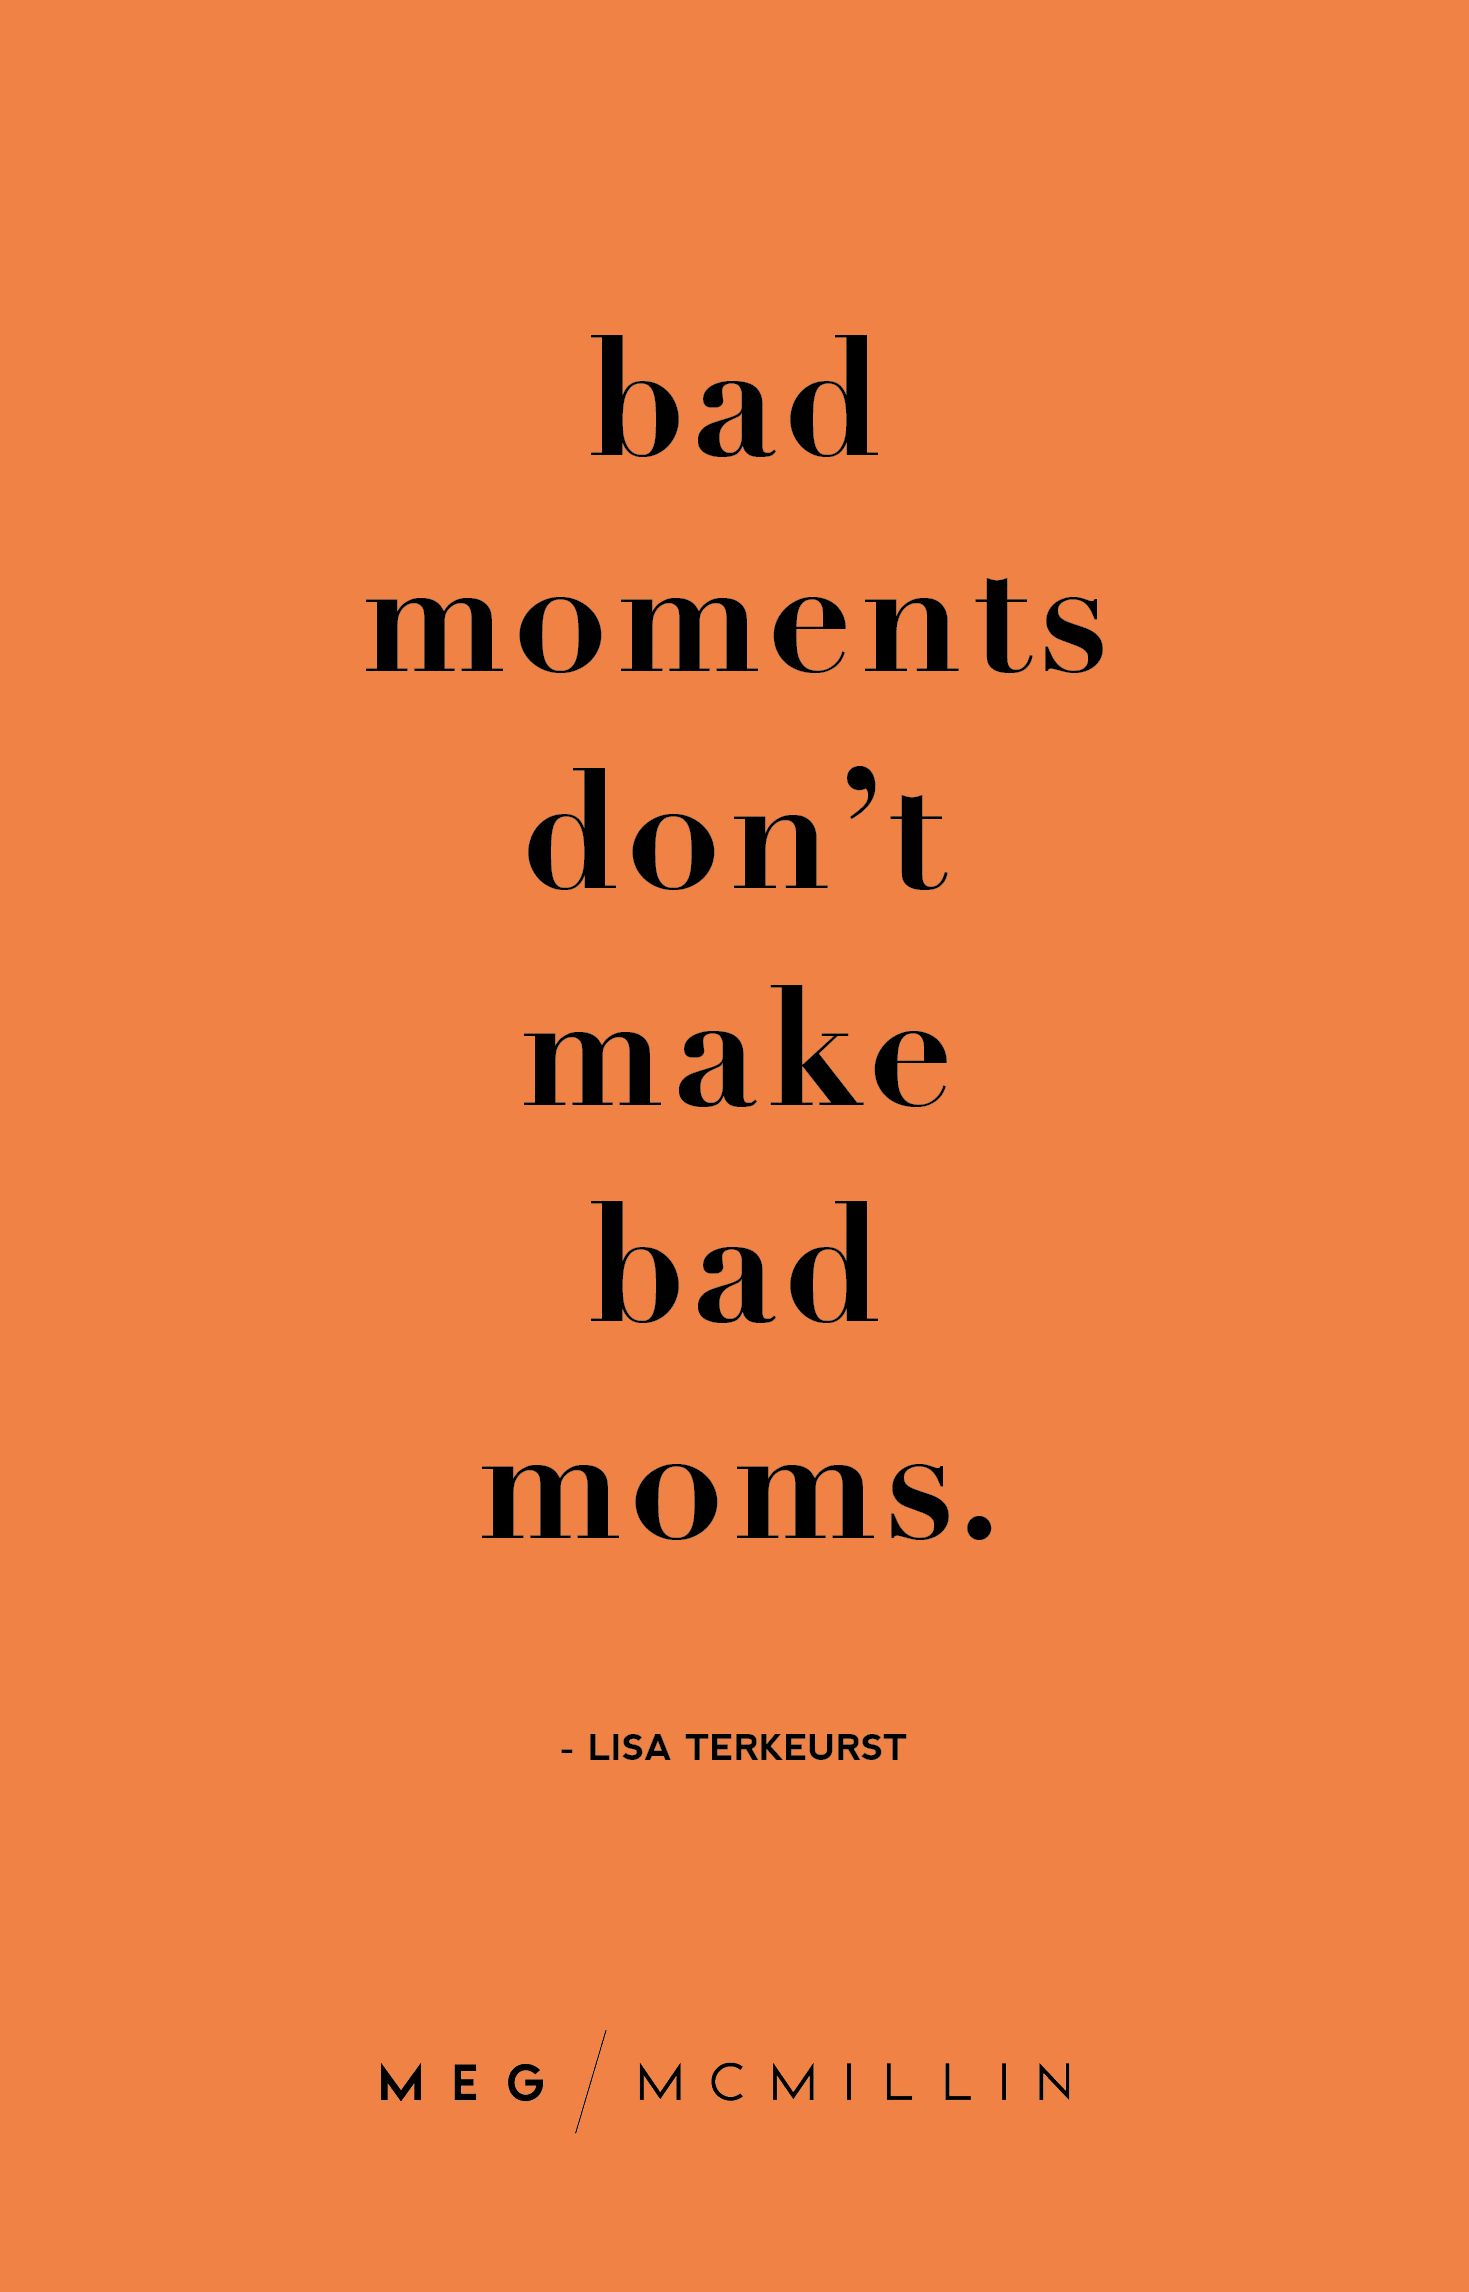 Quotes To Get You Through The Day 10 Inspiring Mom Quotes To Get You Through A Tough Day  Meg